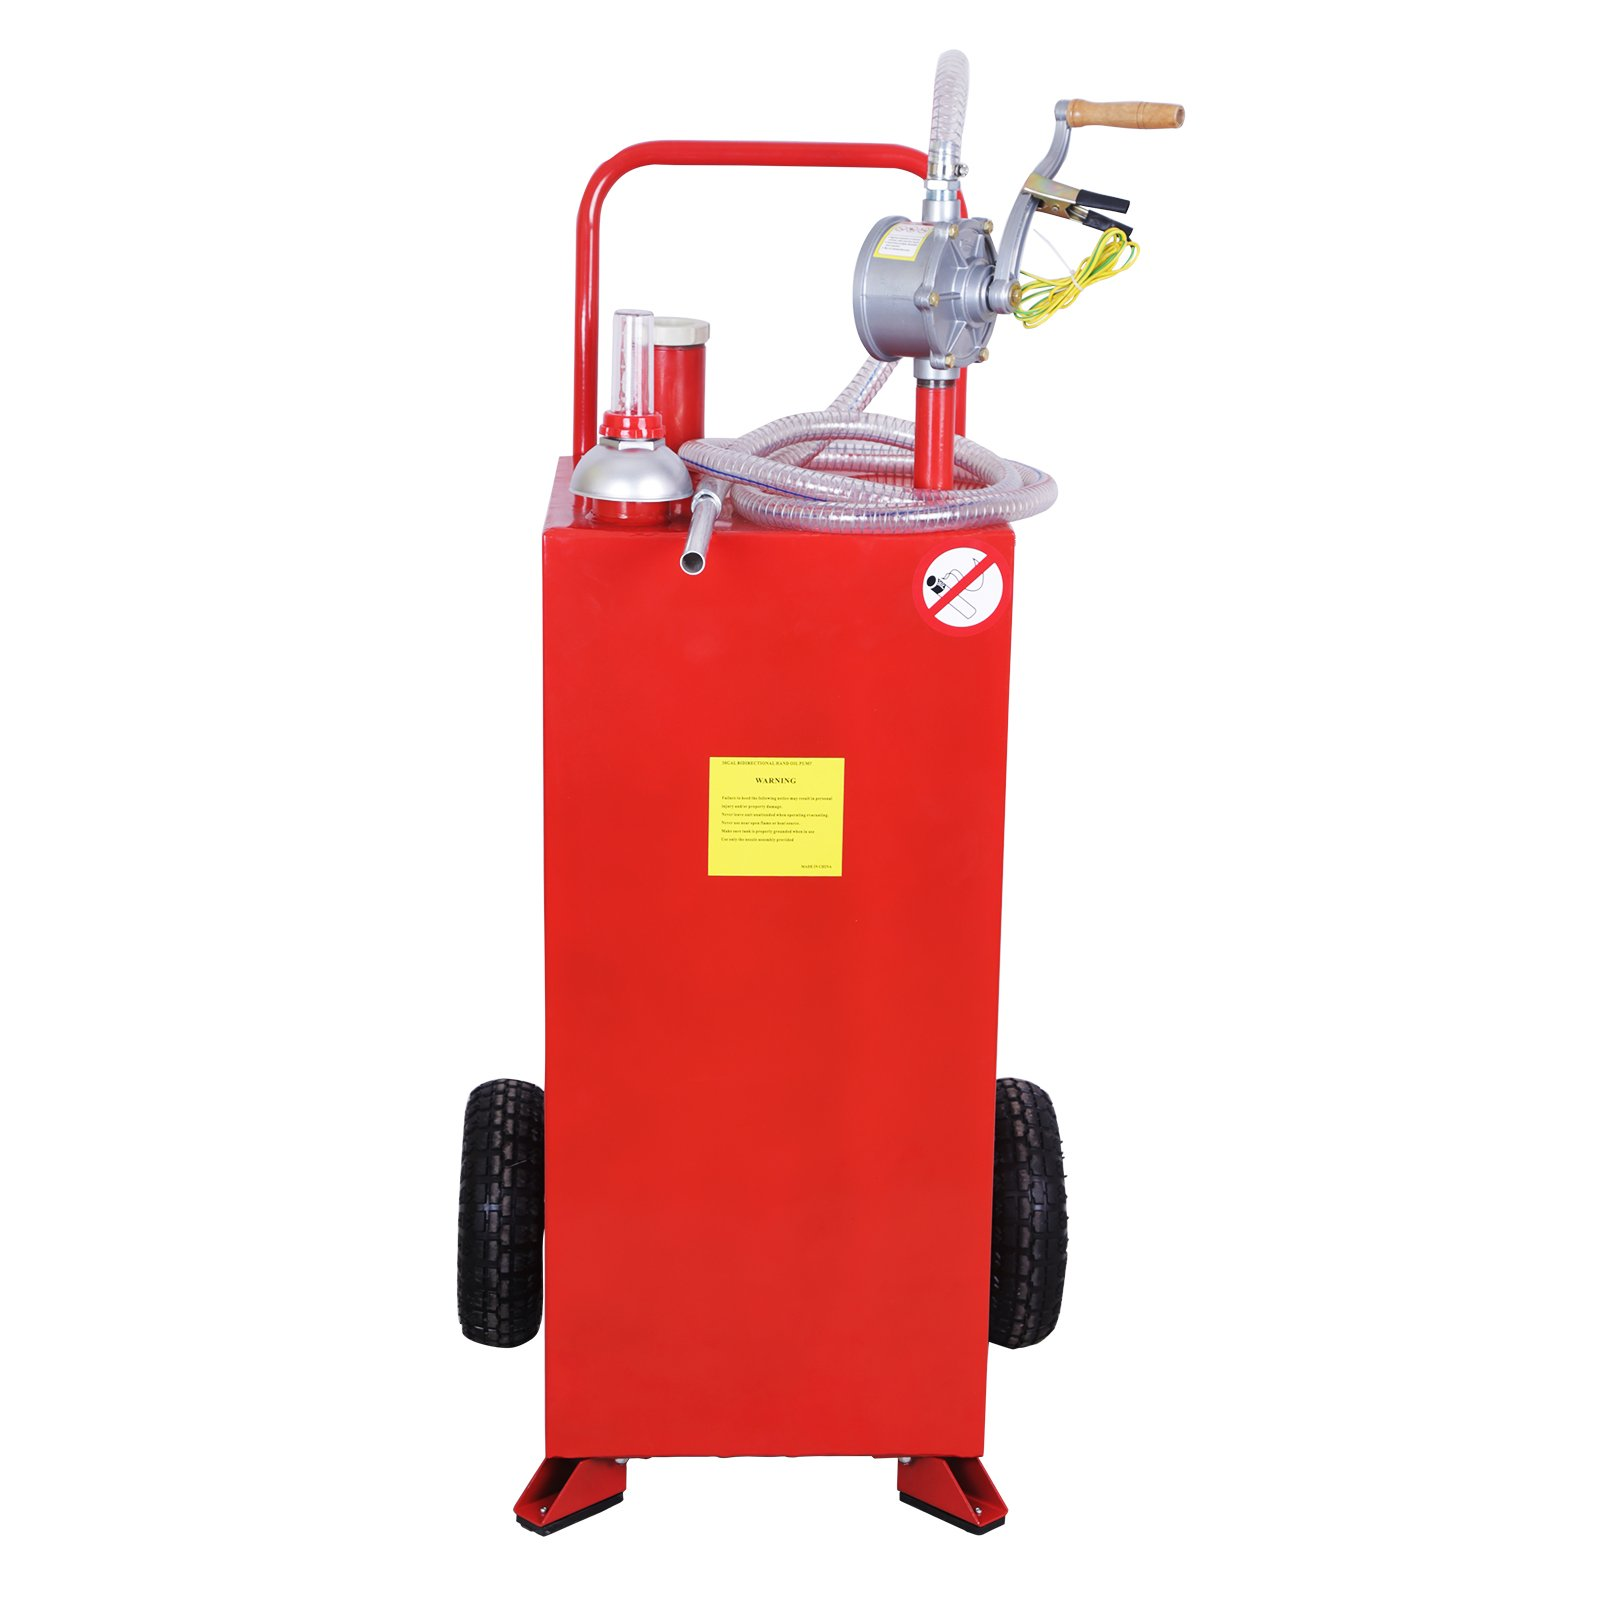 Topvendor 30 Gallon Portable Gas Caddy Tank with Wheels, Pump and Hard Tube for Fuel Storage Gasoline Fluid Diesel,Red